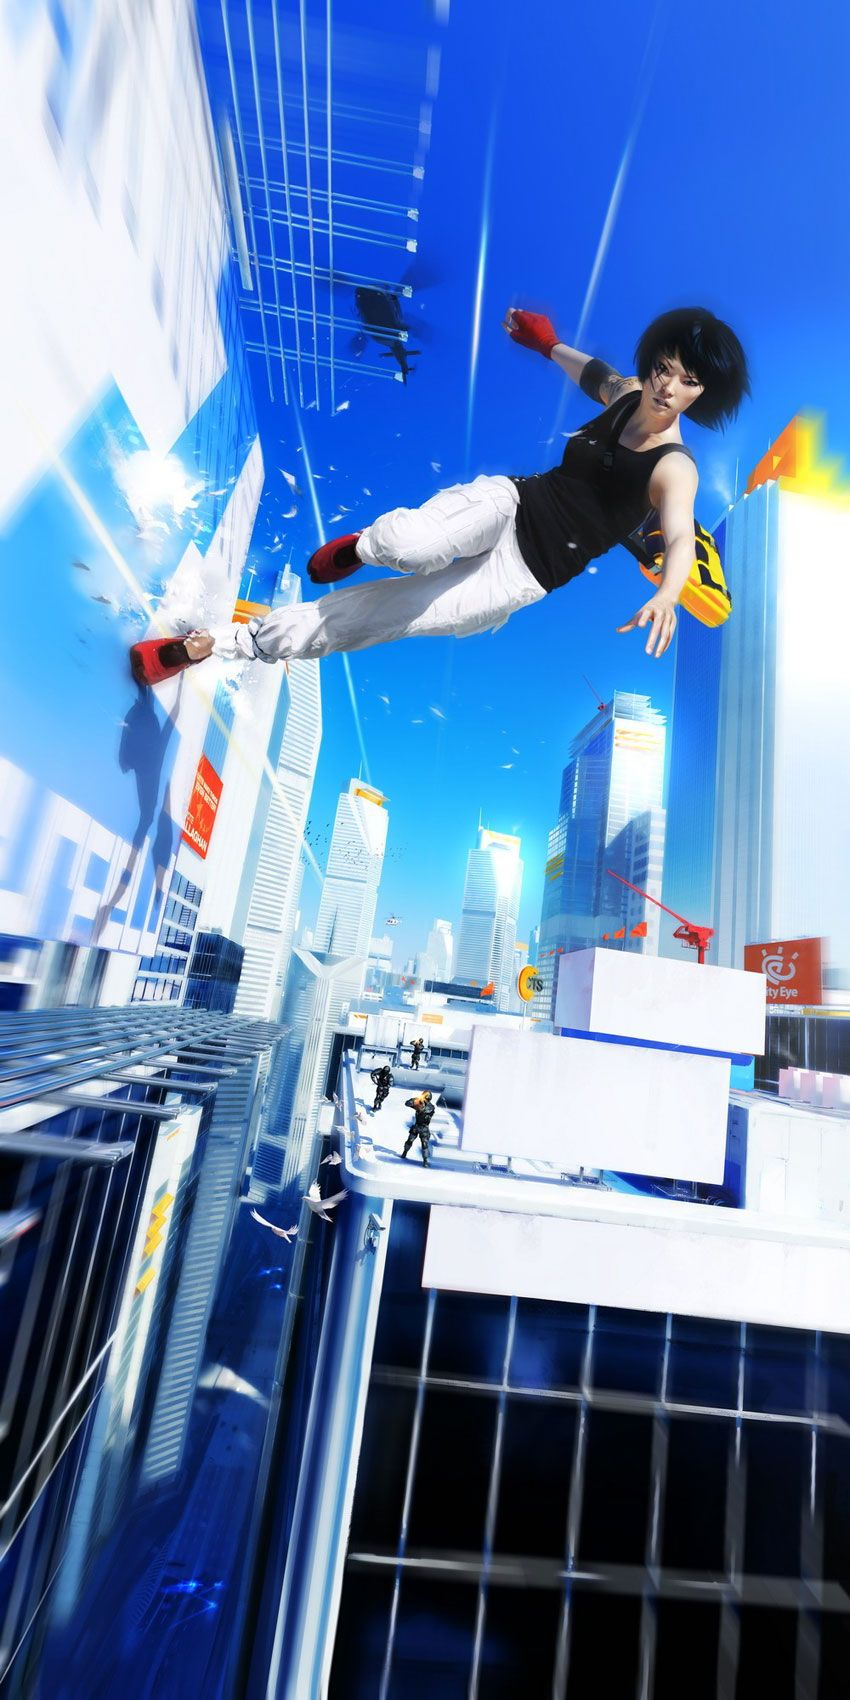 Mirror S Edge A Game Inspired By Big Brother In A Town